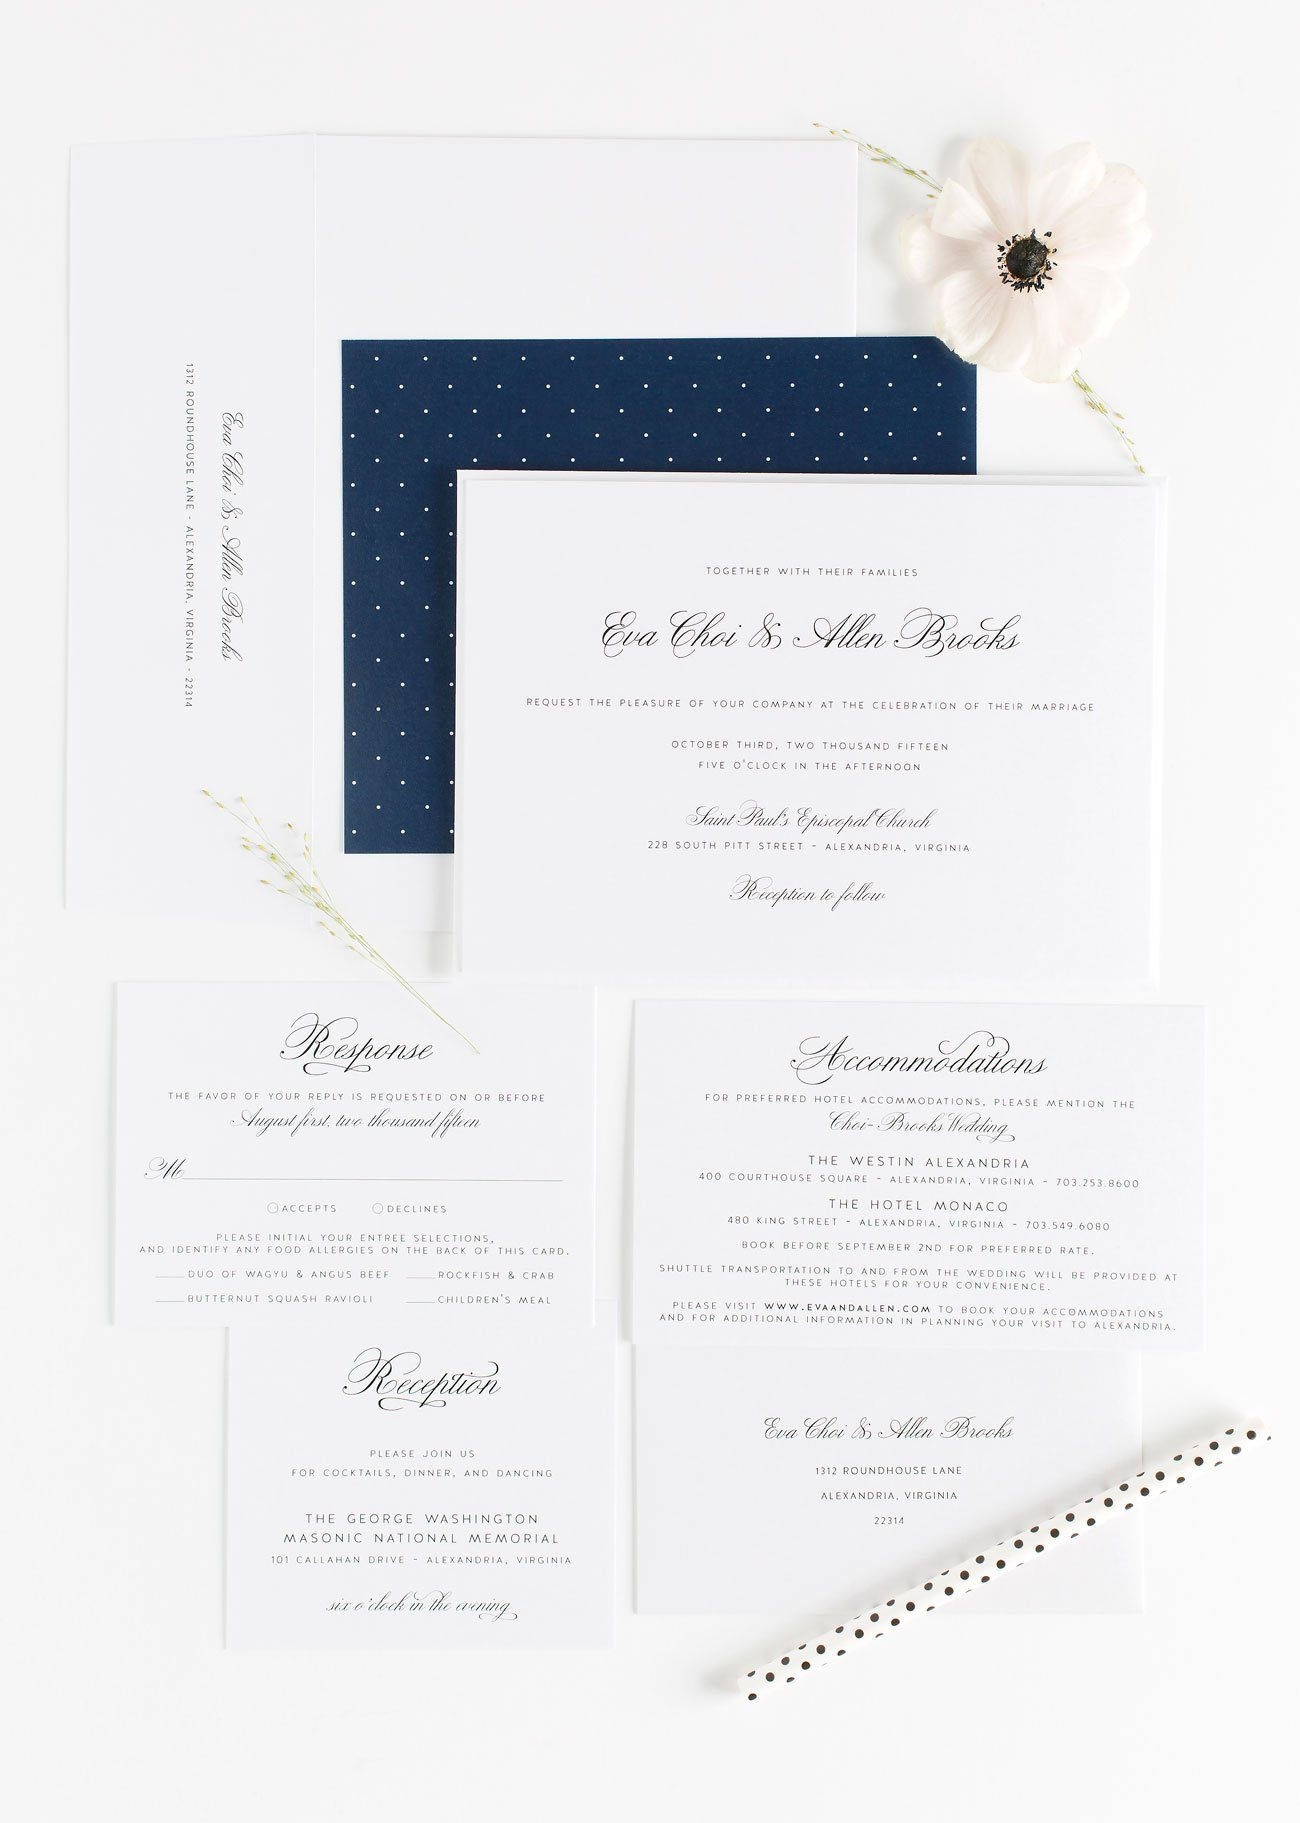 Classic Script Wedding Invitations with a Navy Blue Envelope Liner